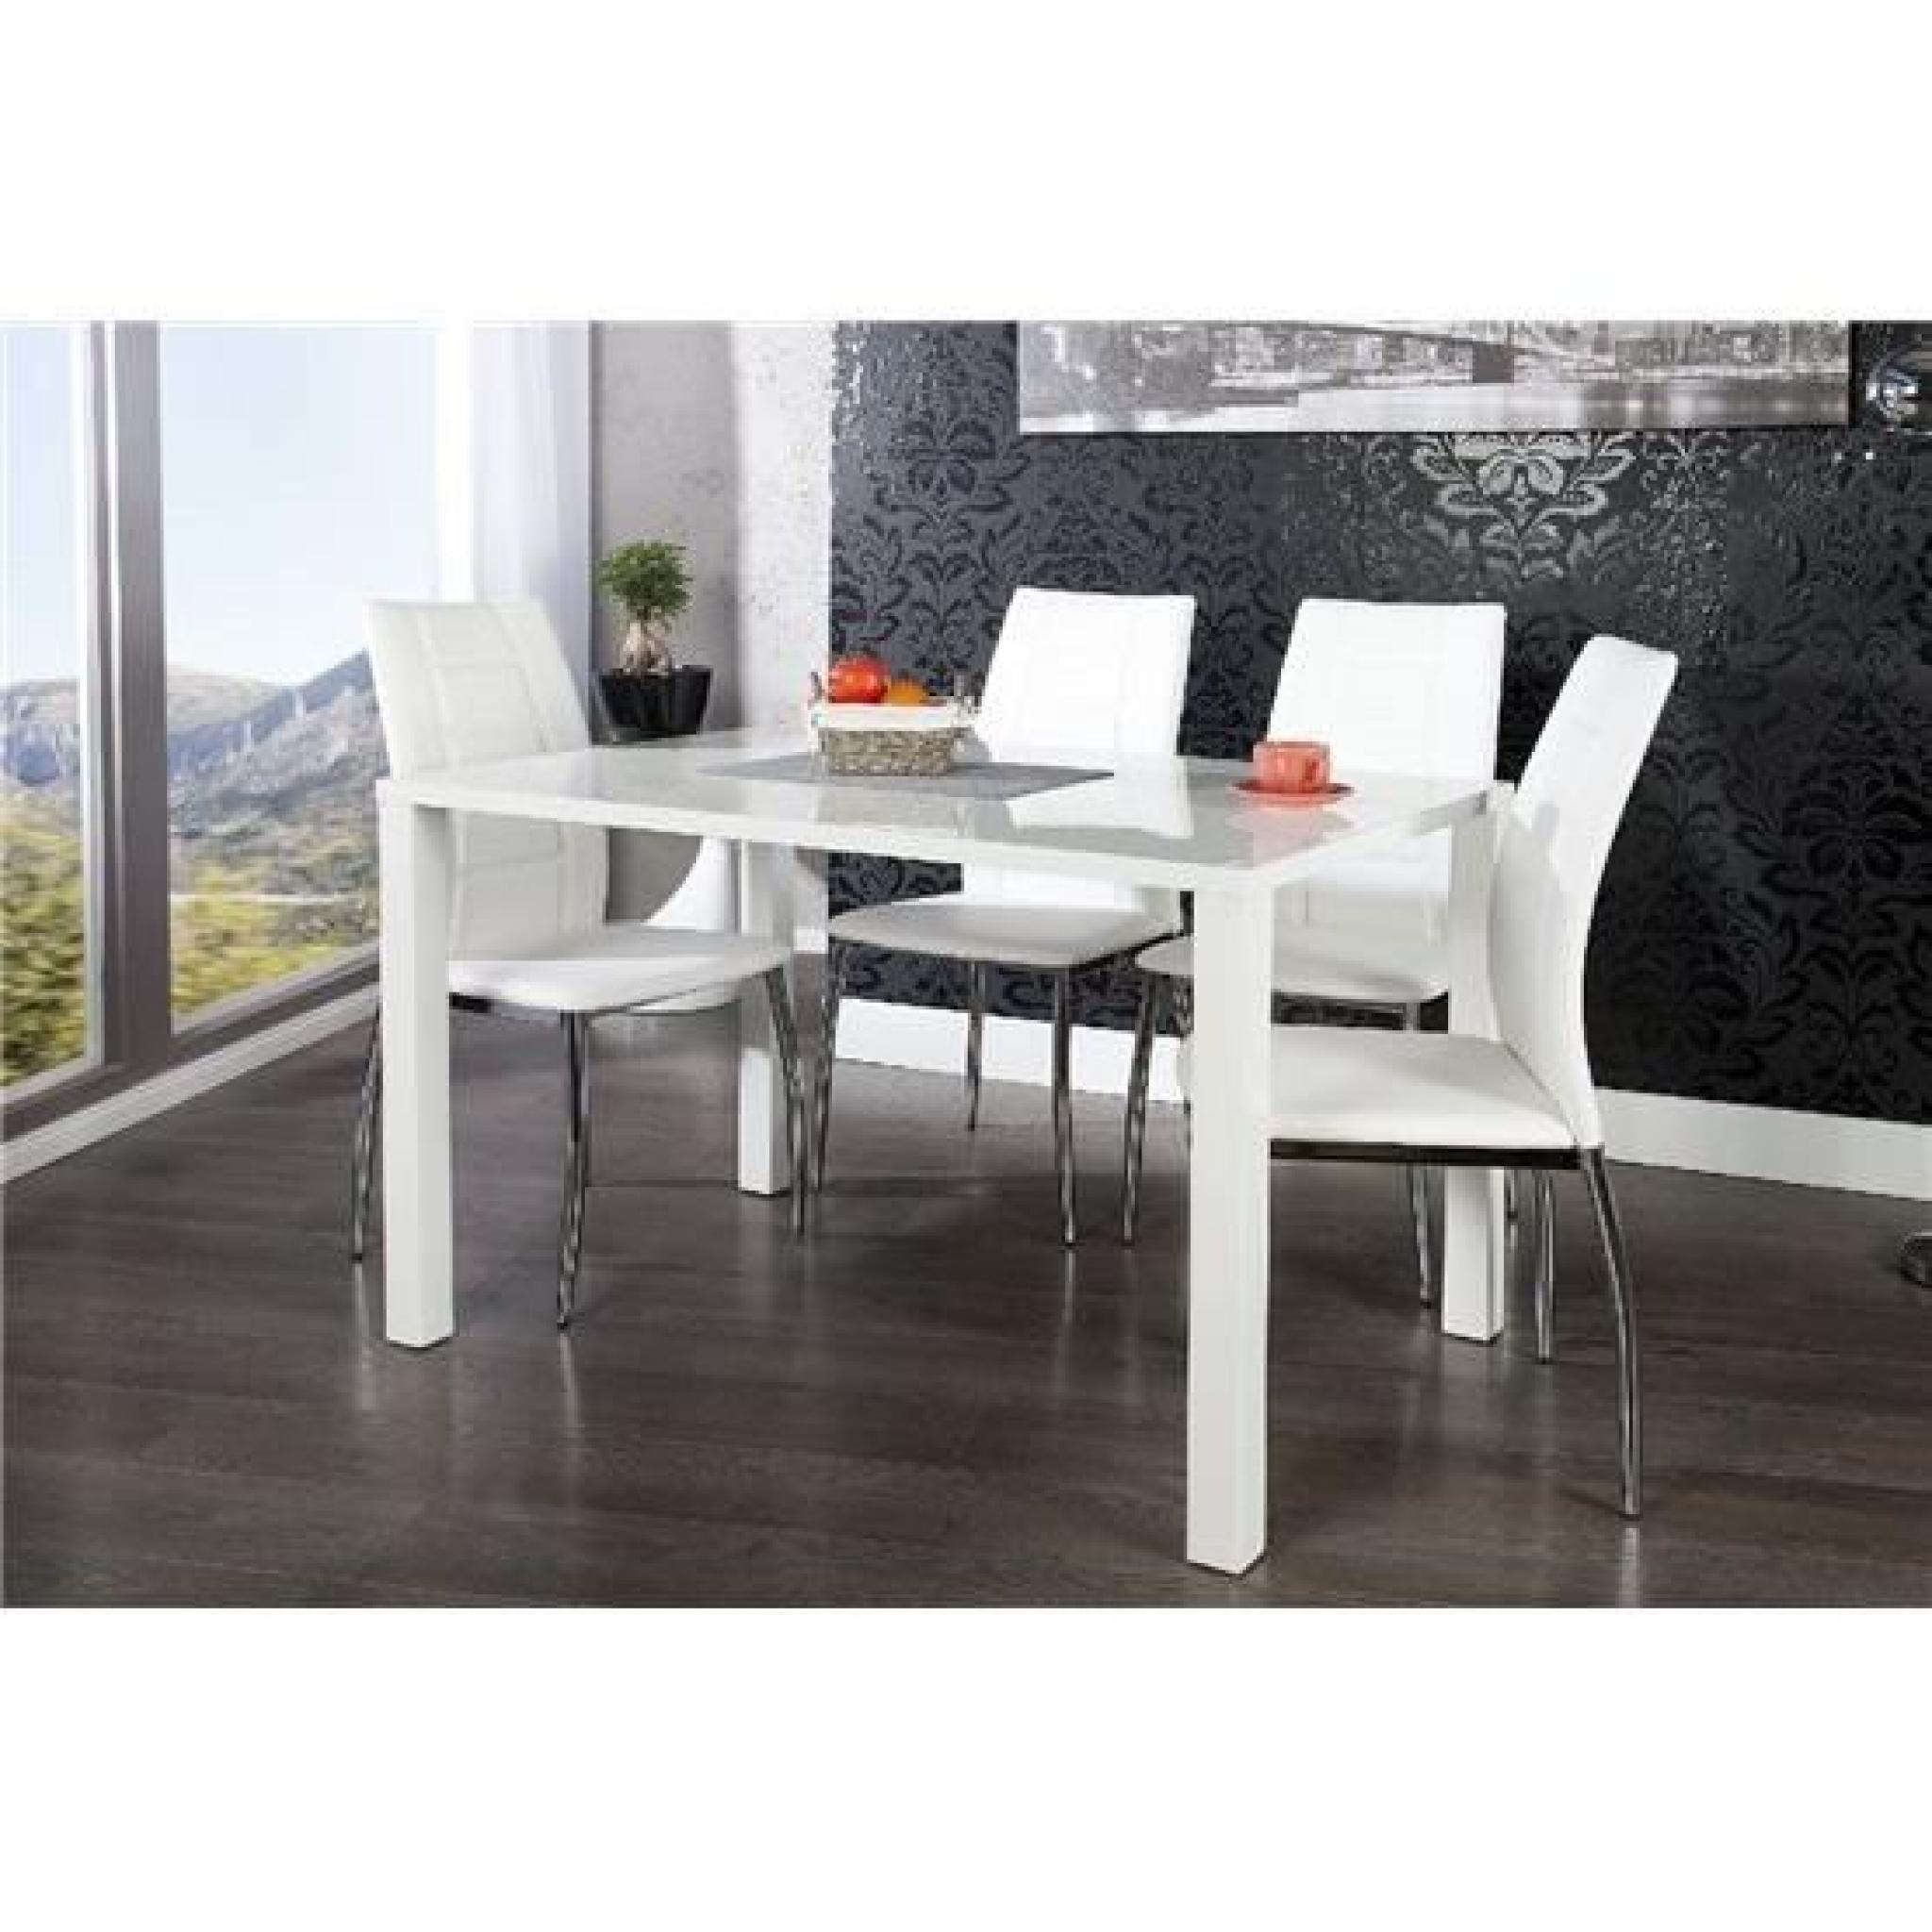 Table manger design lasya blanc 120x80 achat vente for Vente flash salle a manger moderne